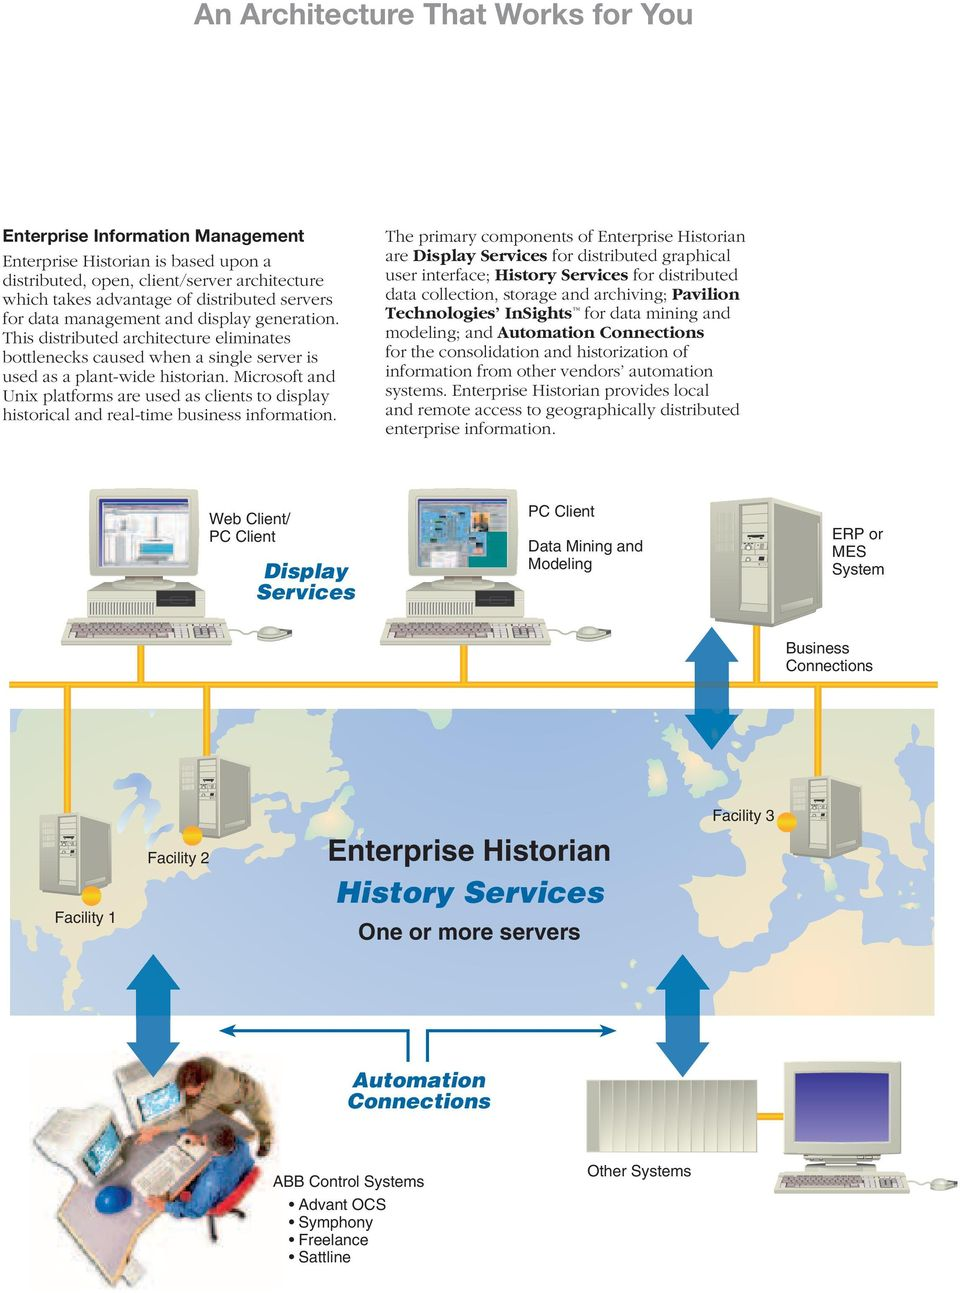 Microsoft and Unix platforms are used as clients to display historical and real-time business information.